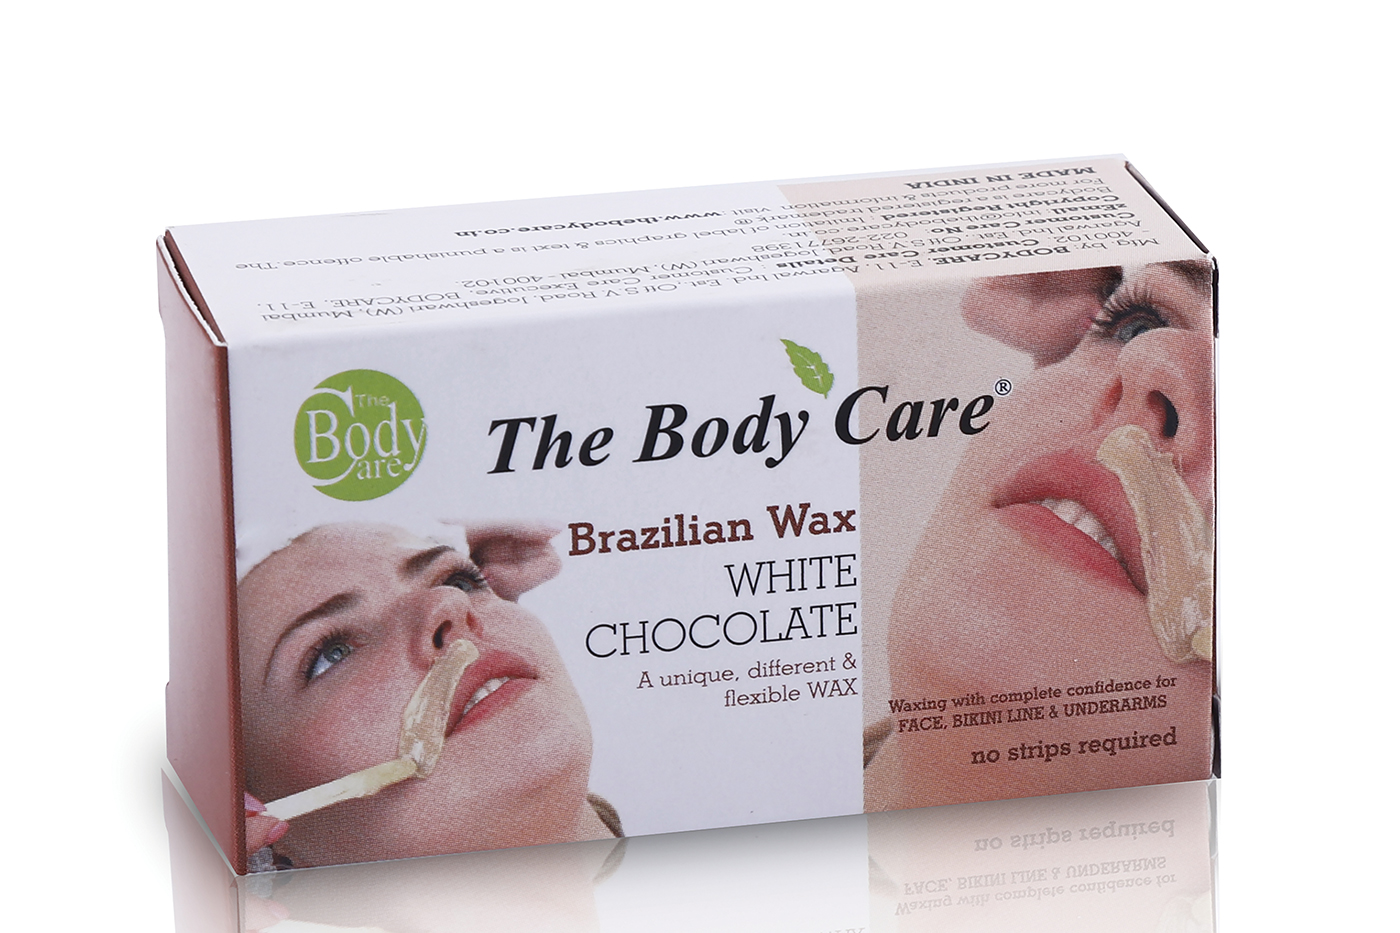 The Body Care's efficient hair removal wax